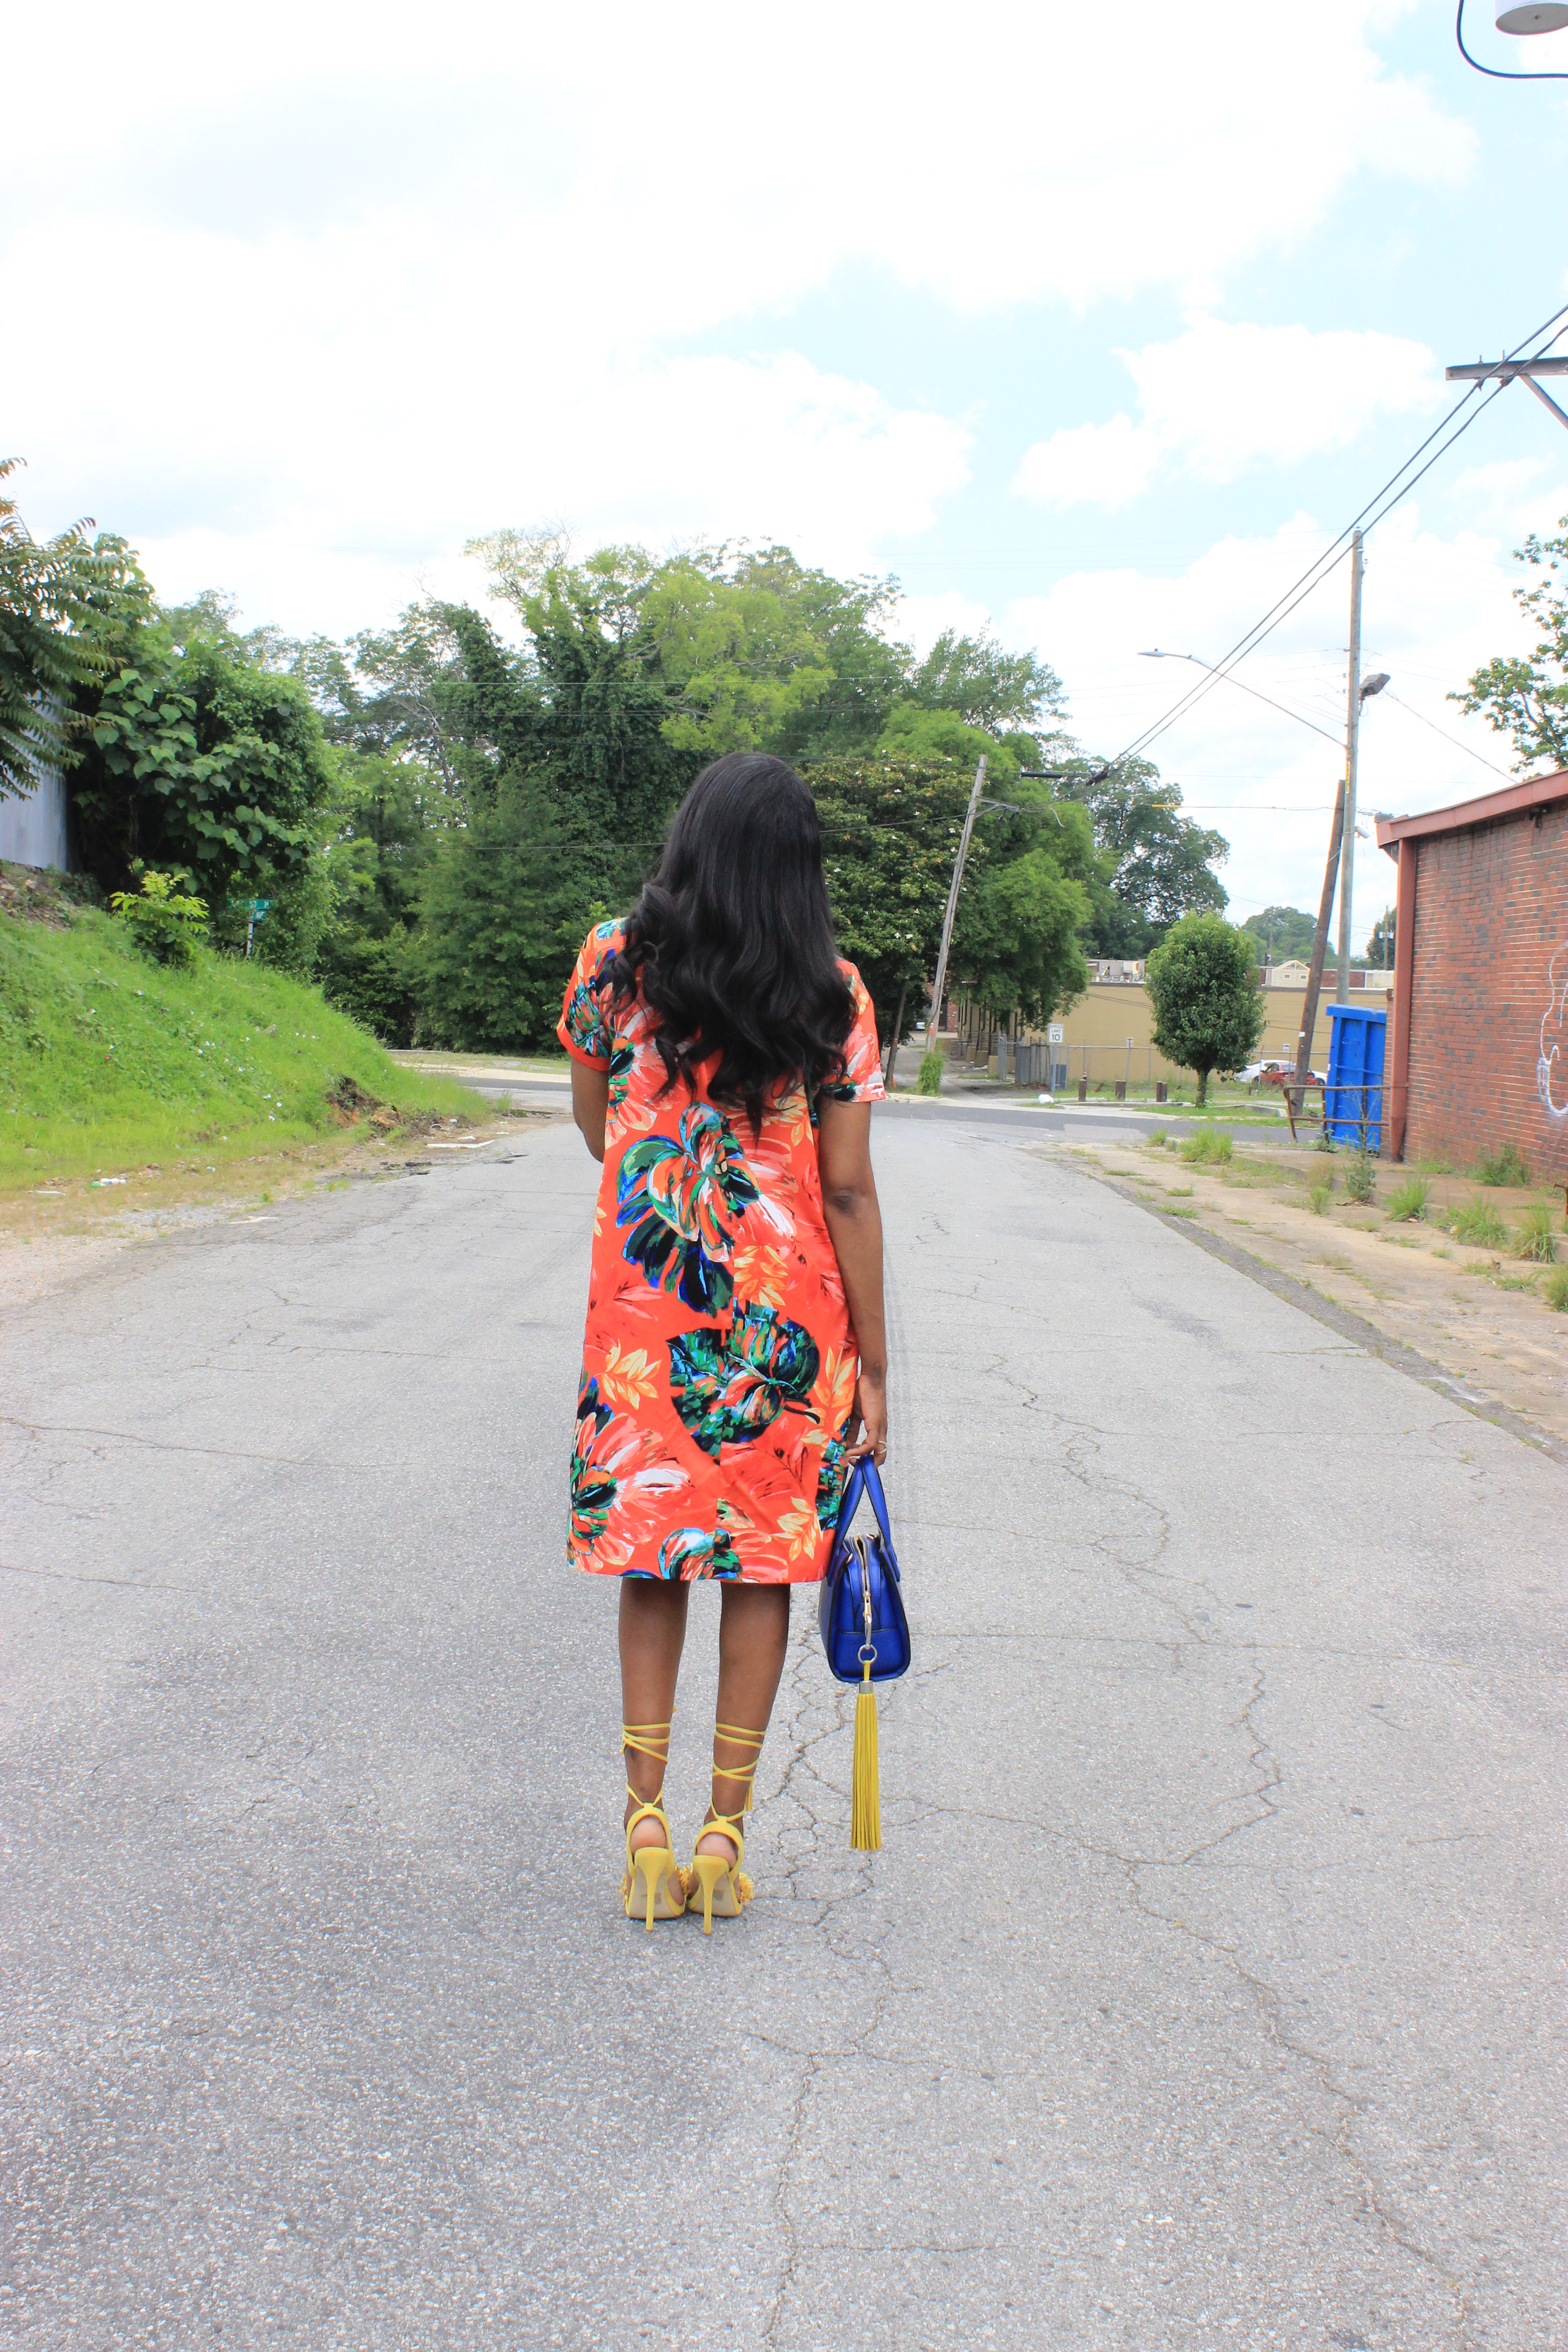 Style-Files-thrifted-Pajama Shirt-Dress-justfab-tayrey-fringe-sandals-how-to-wear-Pajama-style-Shirt Dress-oohlalablog-6